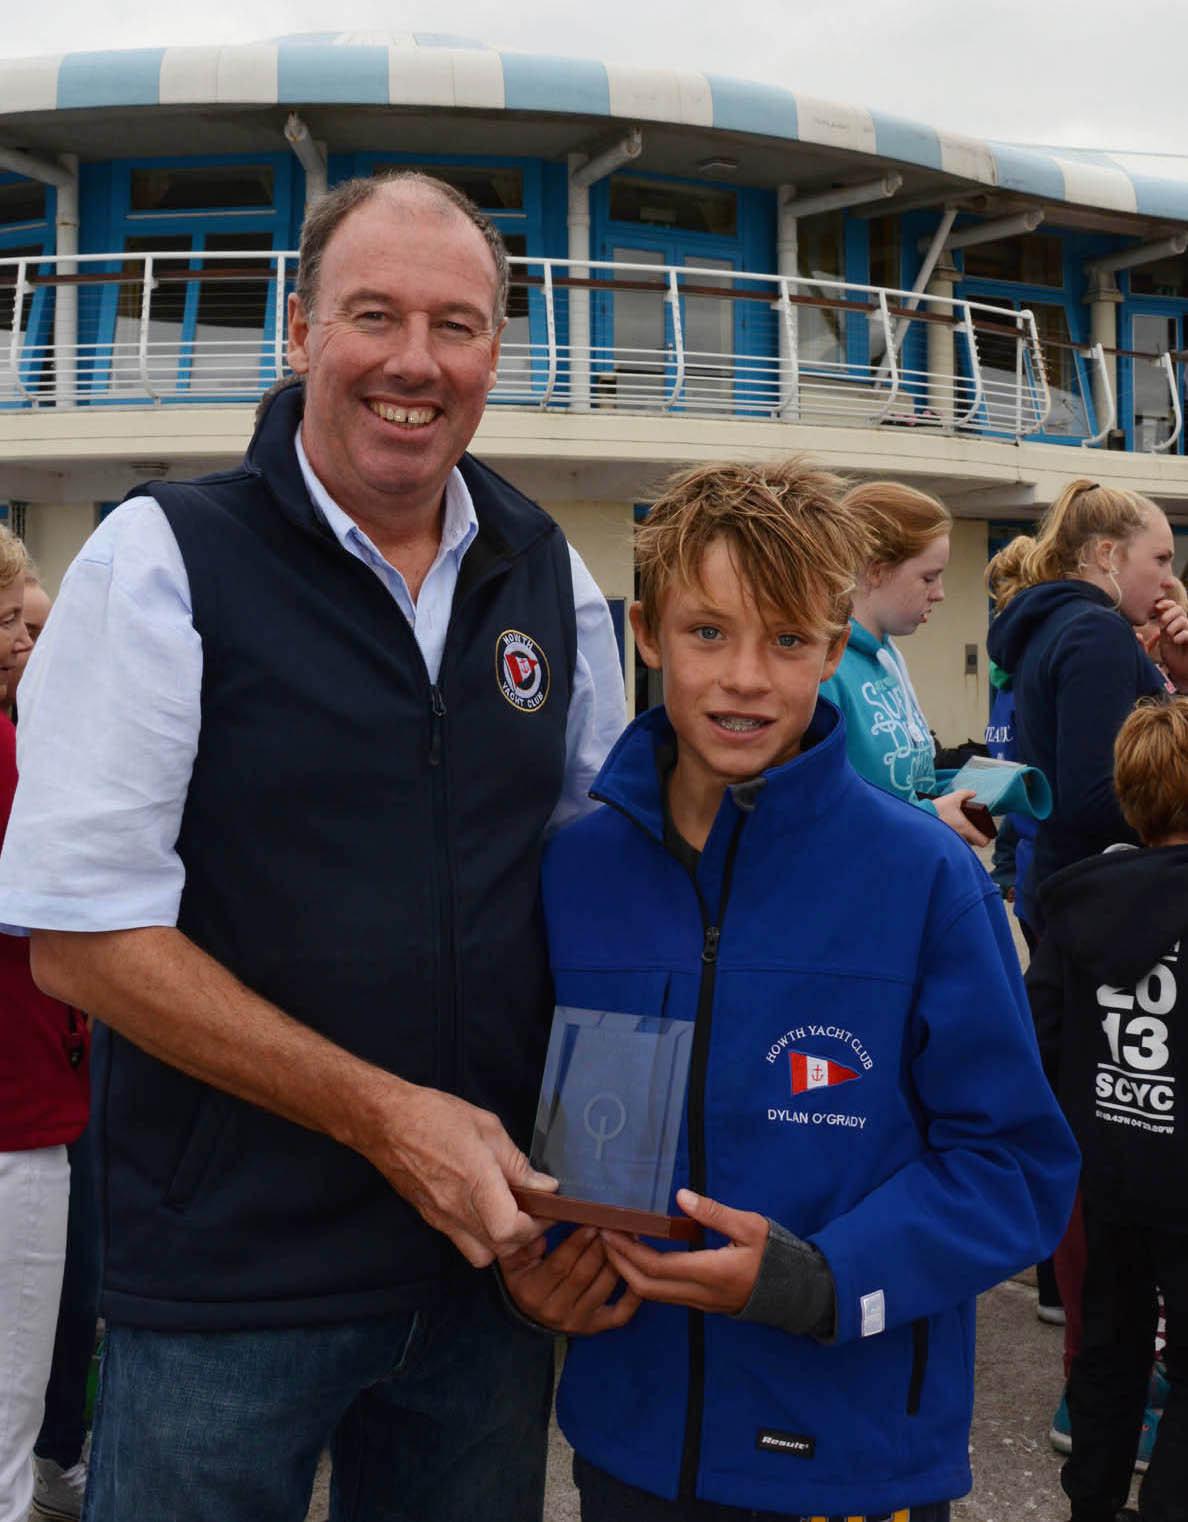 HYC's Dylan O'Grady narrowly missed out on the main prize, finishing a brilliant 2nd place in the Senior Gold Fleet